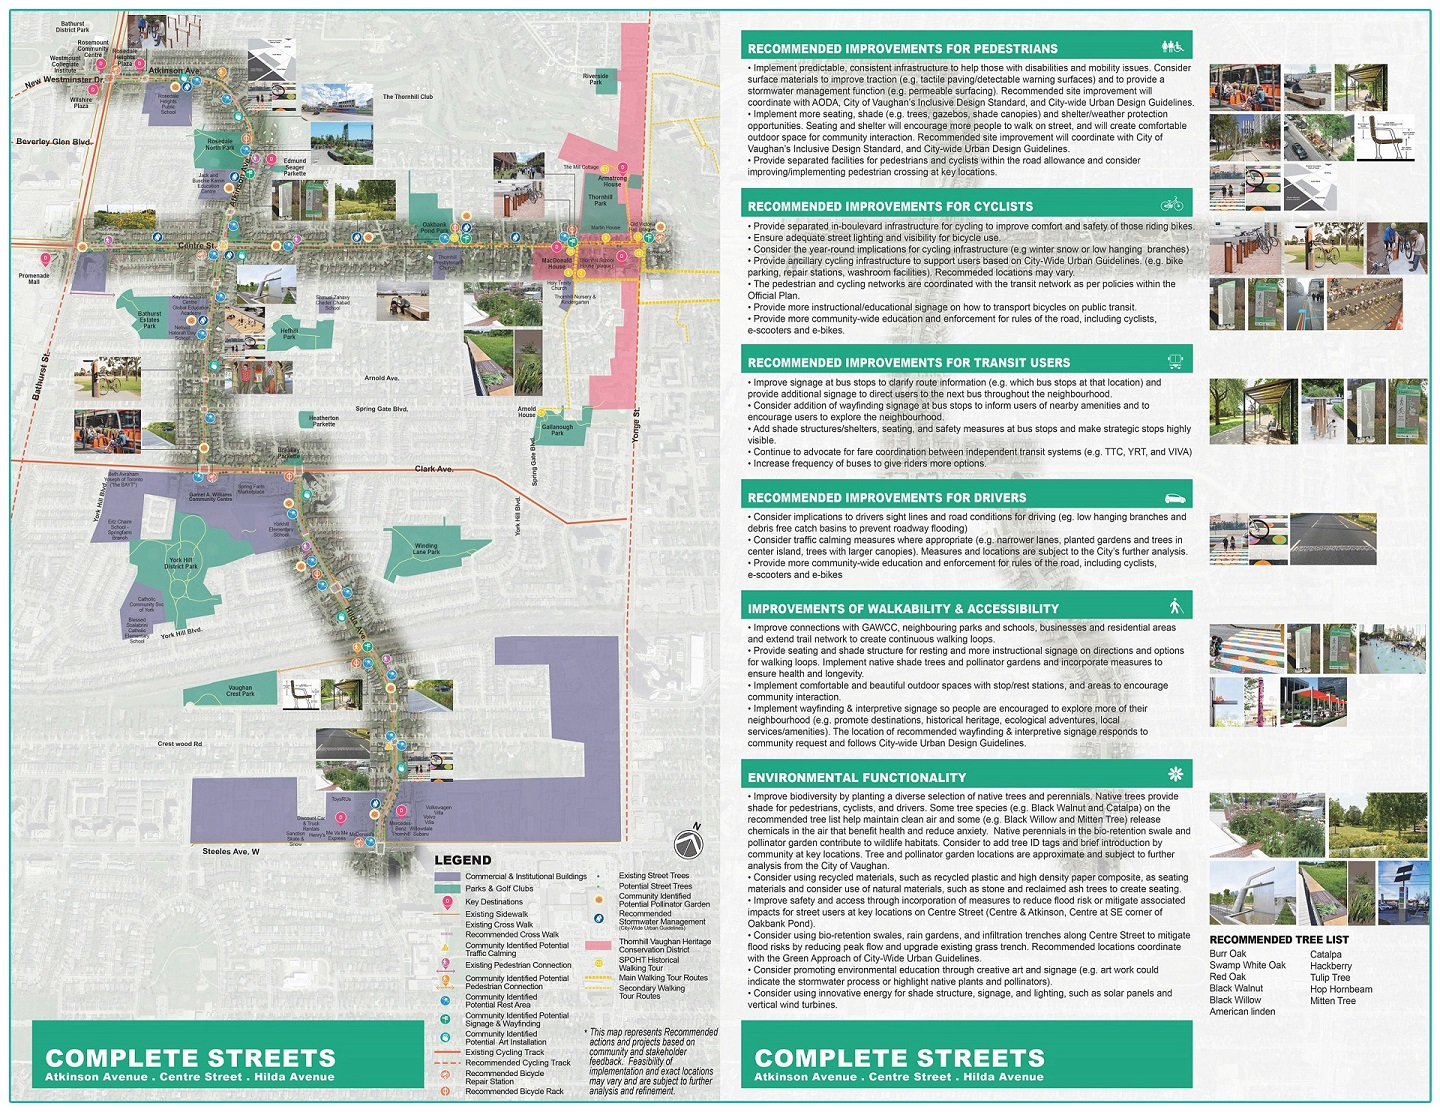 Thornhill SNAP complete streets conceptual plan